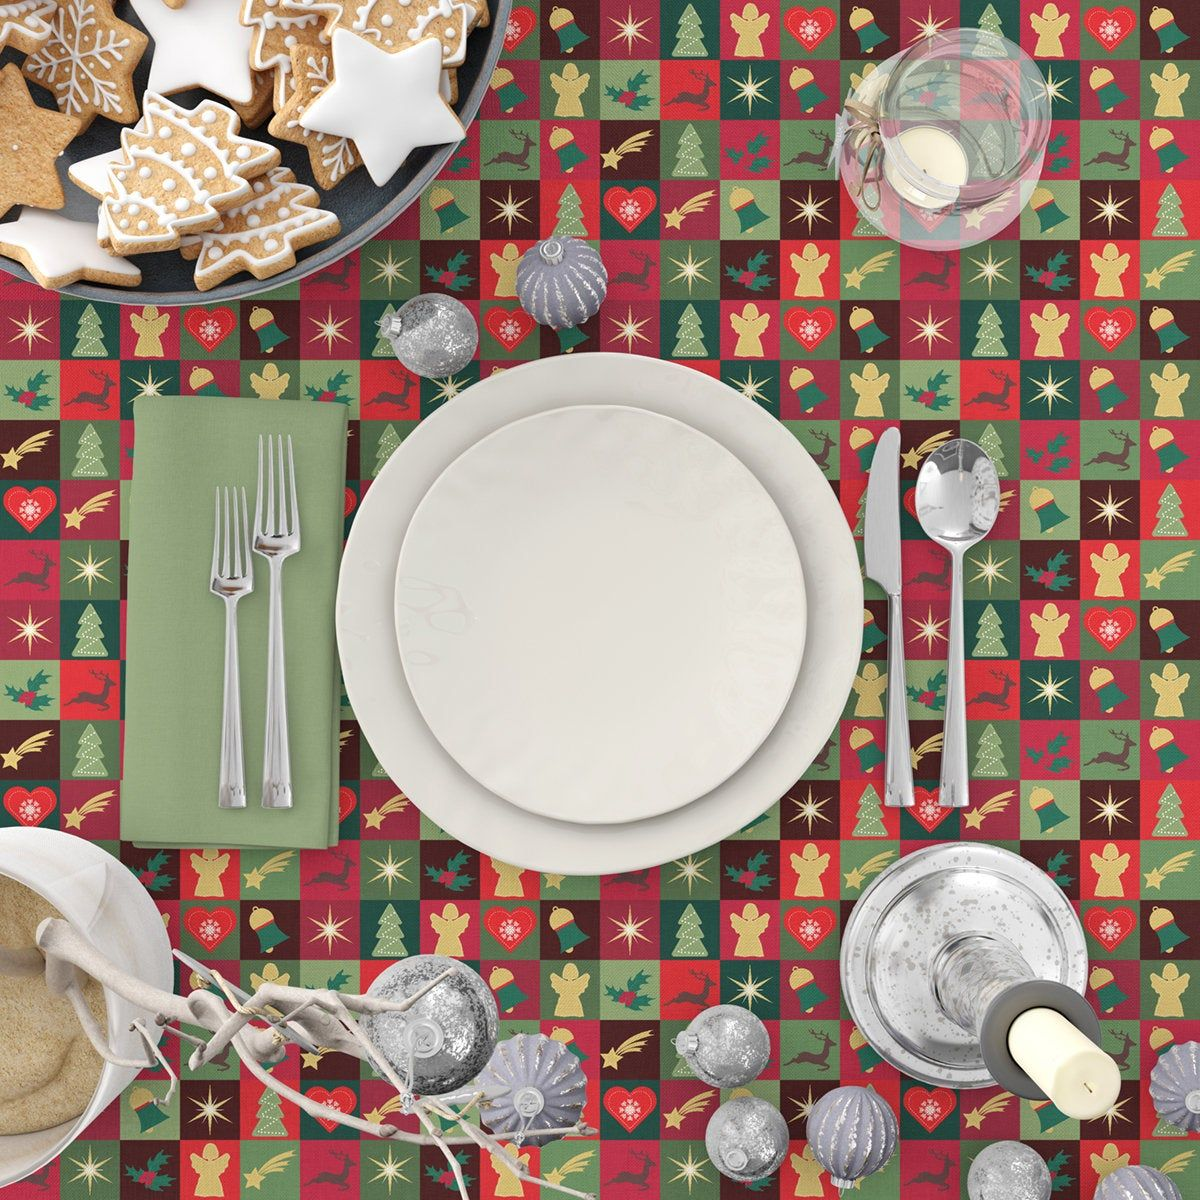 Christmas Quilt Pattern Tablecloth Round Christmas Tablecloth Rectangular Christmas Tablecloth Christmas Table Decorations Christmas Table Decorations Round Christmas Tablecloth Christmas Table